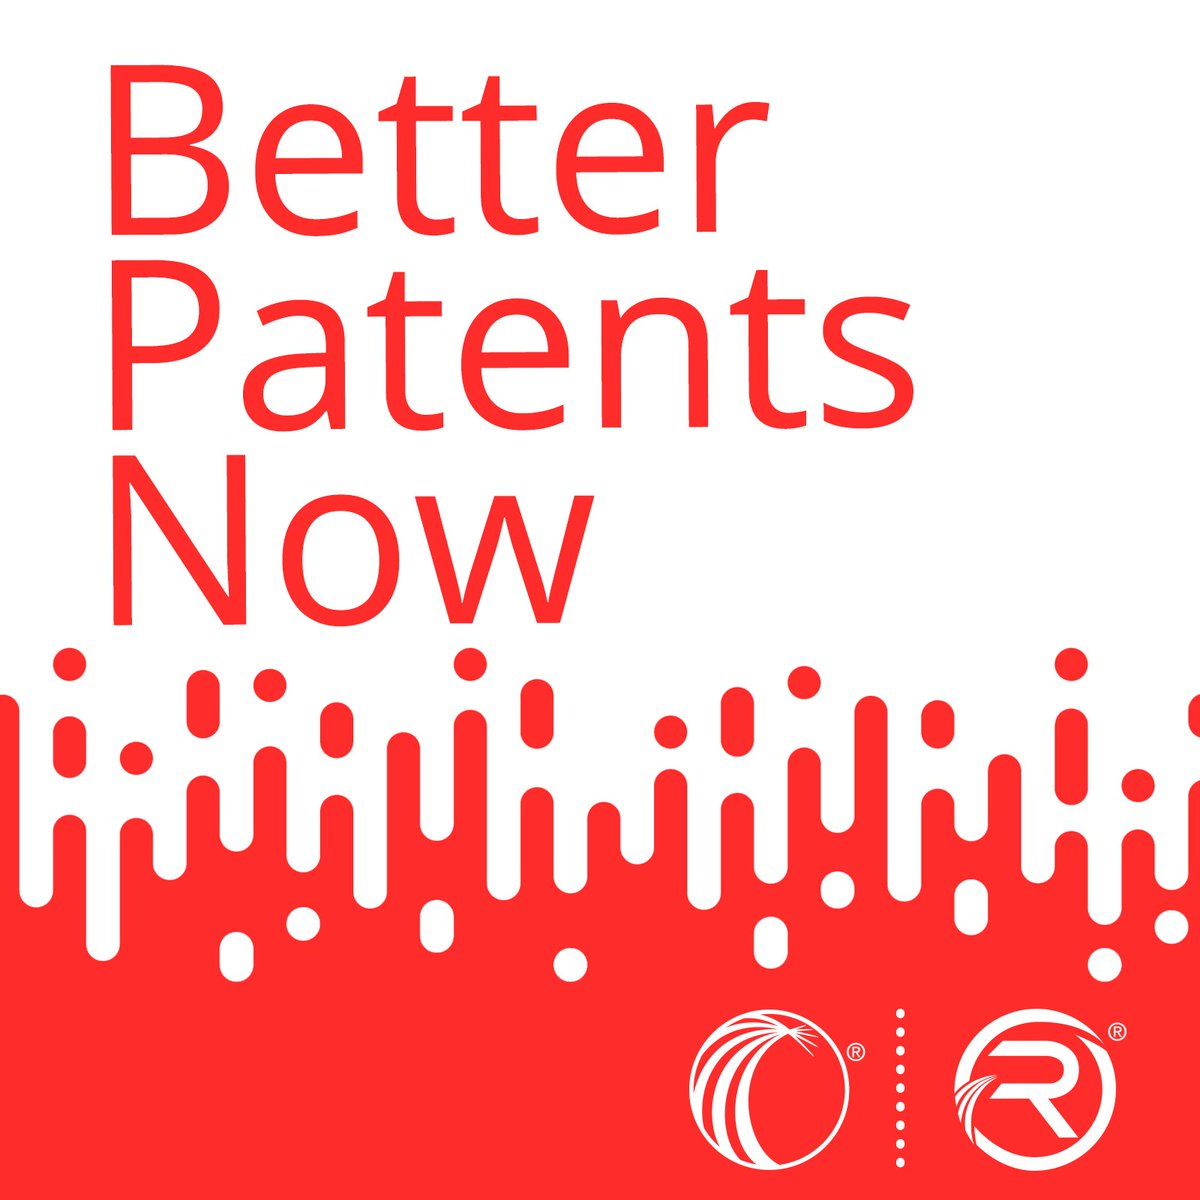 Monsanto&#39;s Wise Choice · Better #Patents Now #Podcast  http:// knowledge.reedtech.com/better-patents -now-podcast/19-monsantos-wise-choice &nbsp; …  #LexisNexisIP Solutions @  http:// info.lexisnexis.co.in/IPSolutions  &nbsp;   #IPSolutions<br>http://pic.twitter.com/V3L7KcHBdA